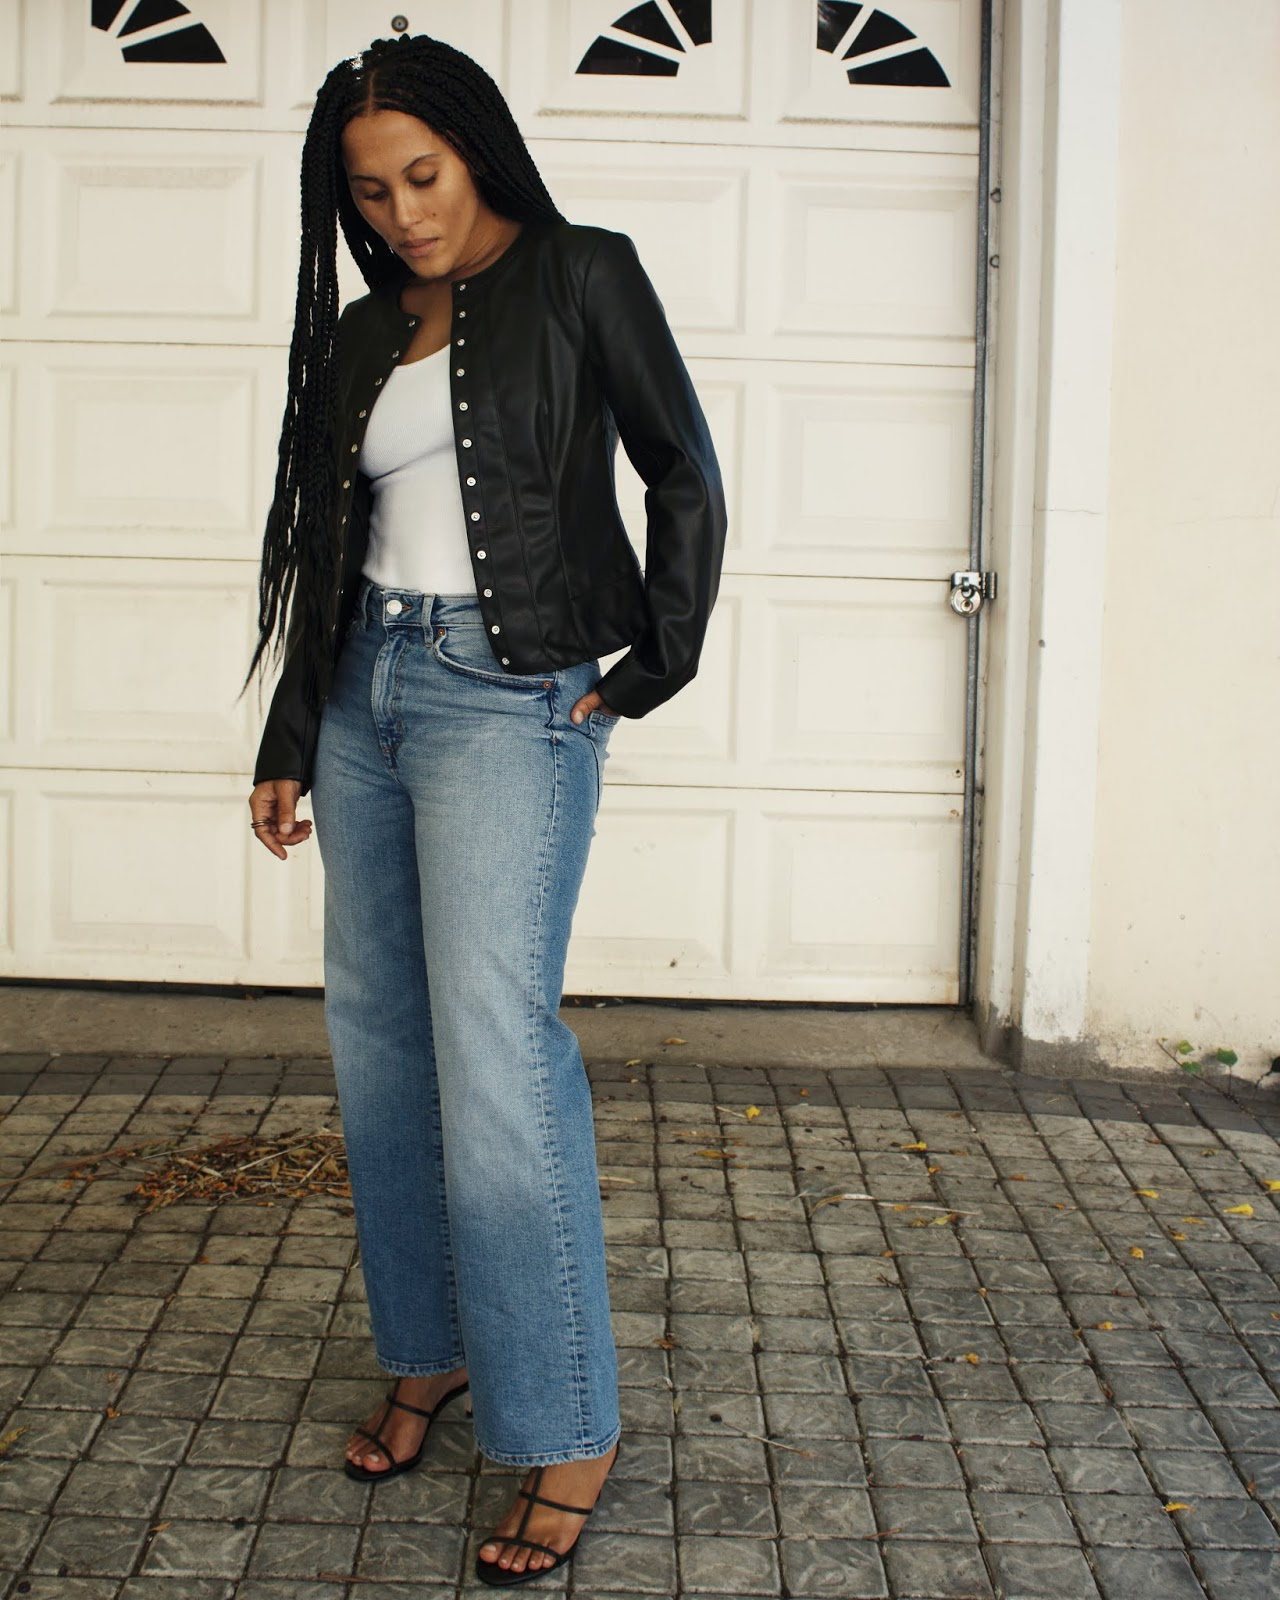 Liezel-Esquire-how-to-style-faux-leather-jacket